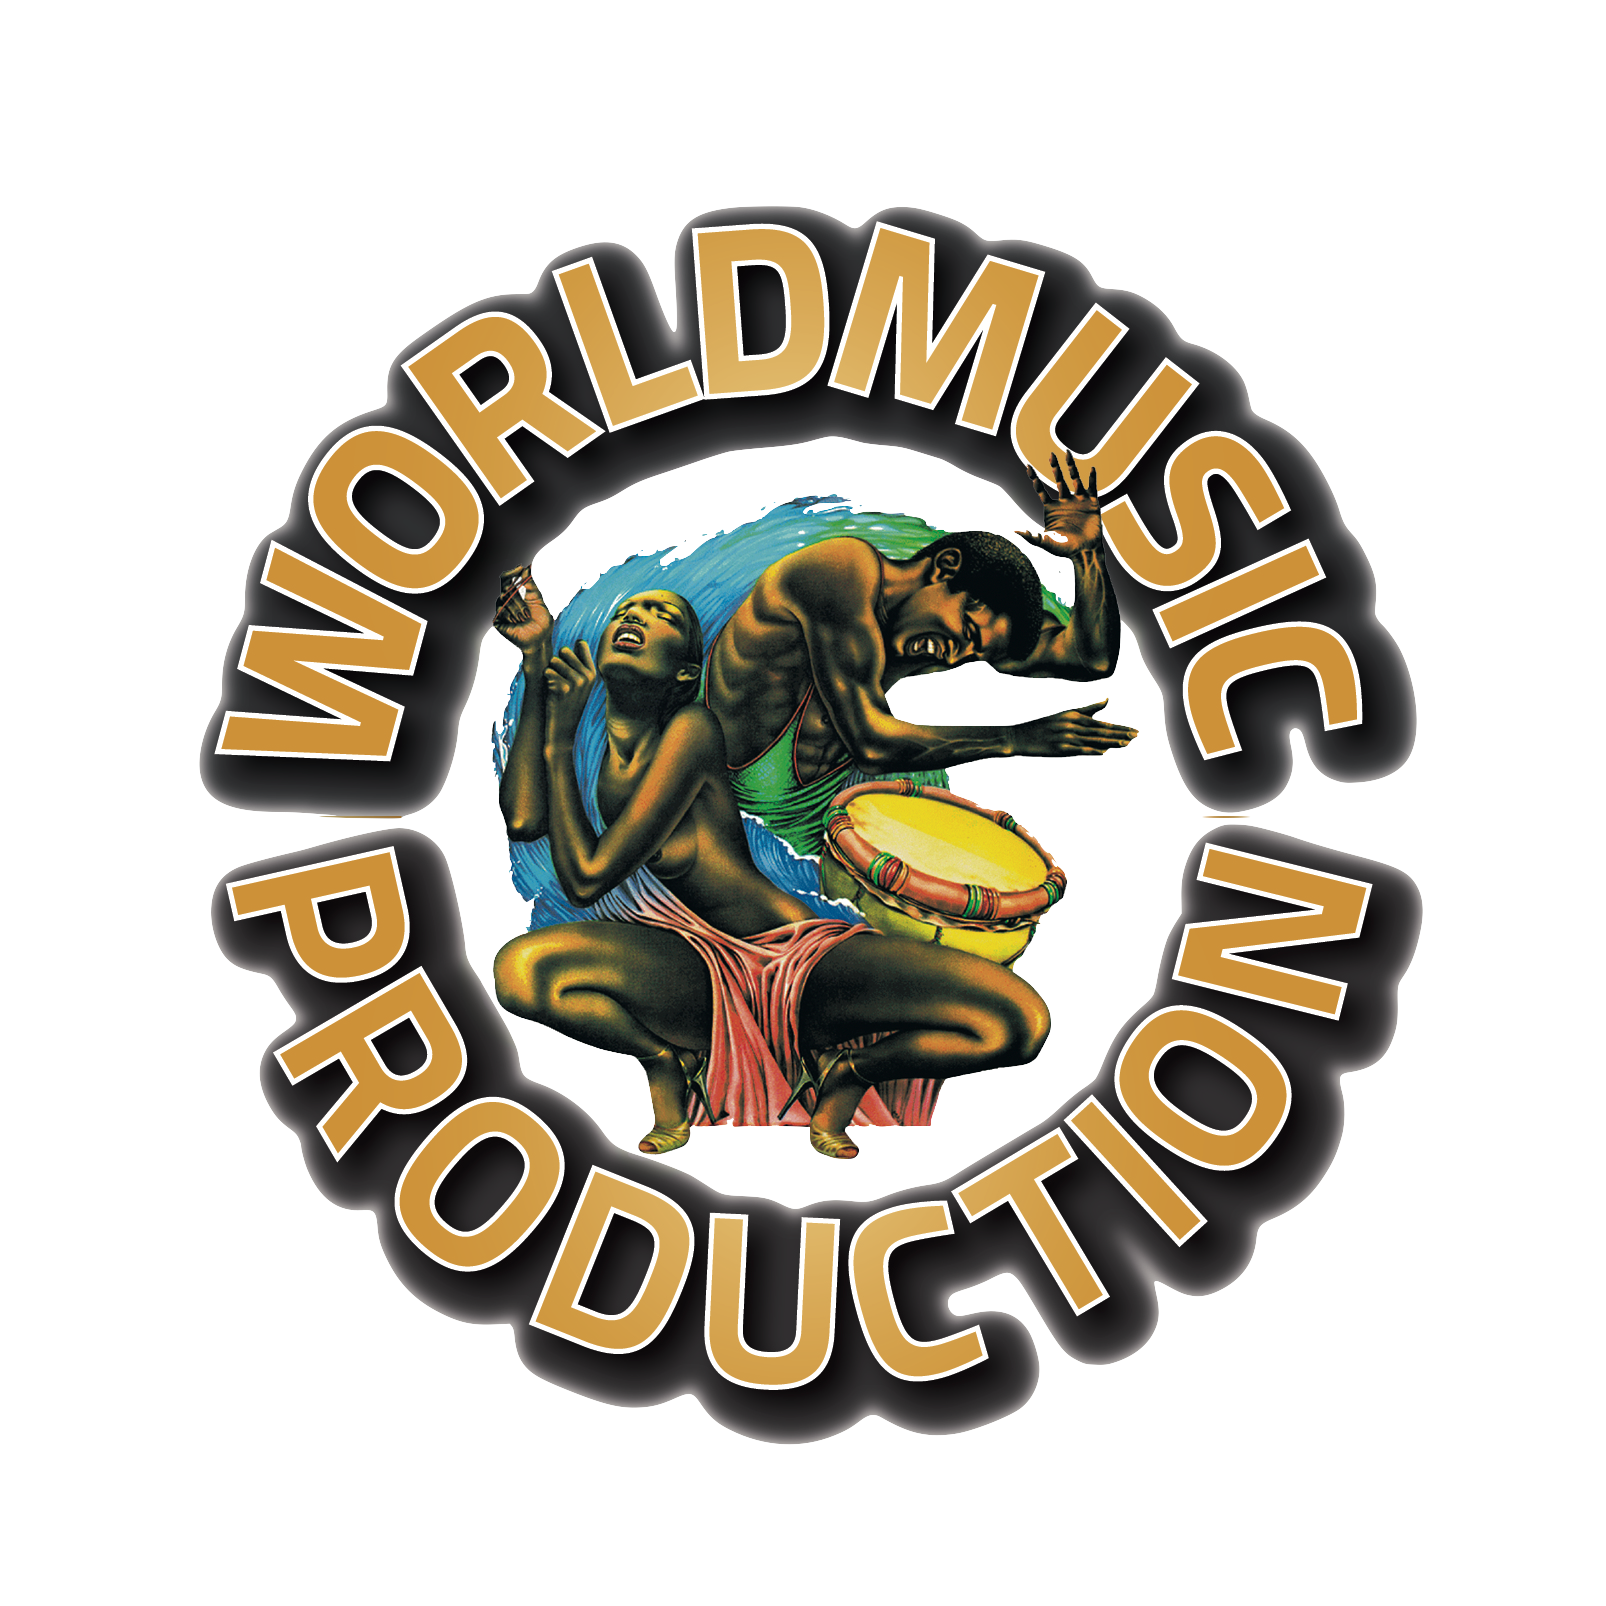 World Music Production